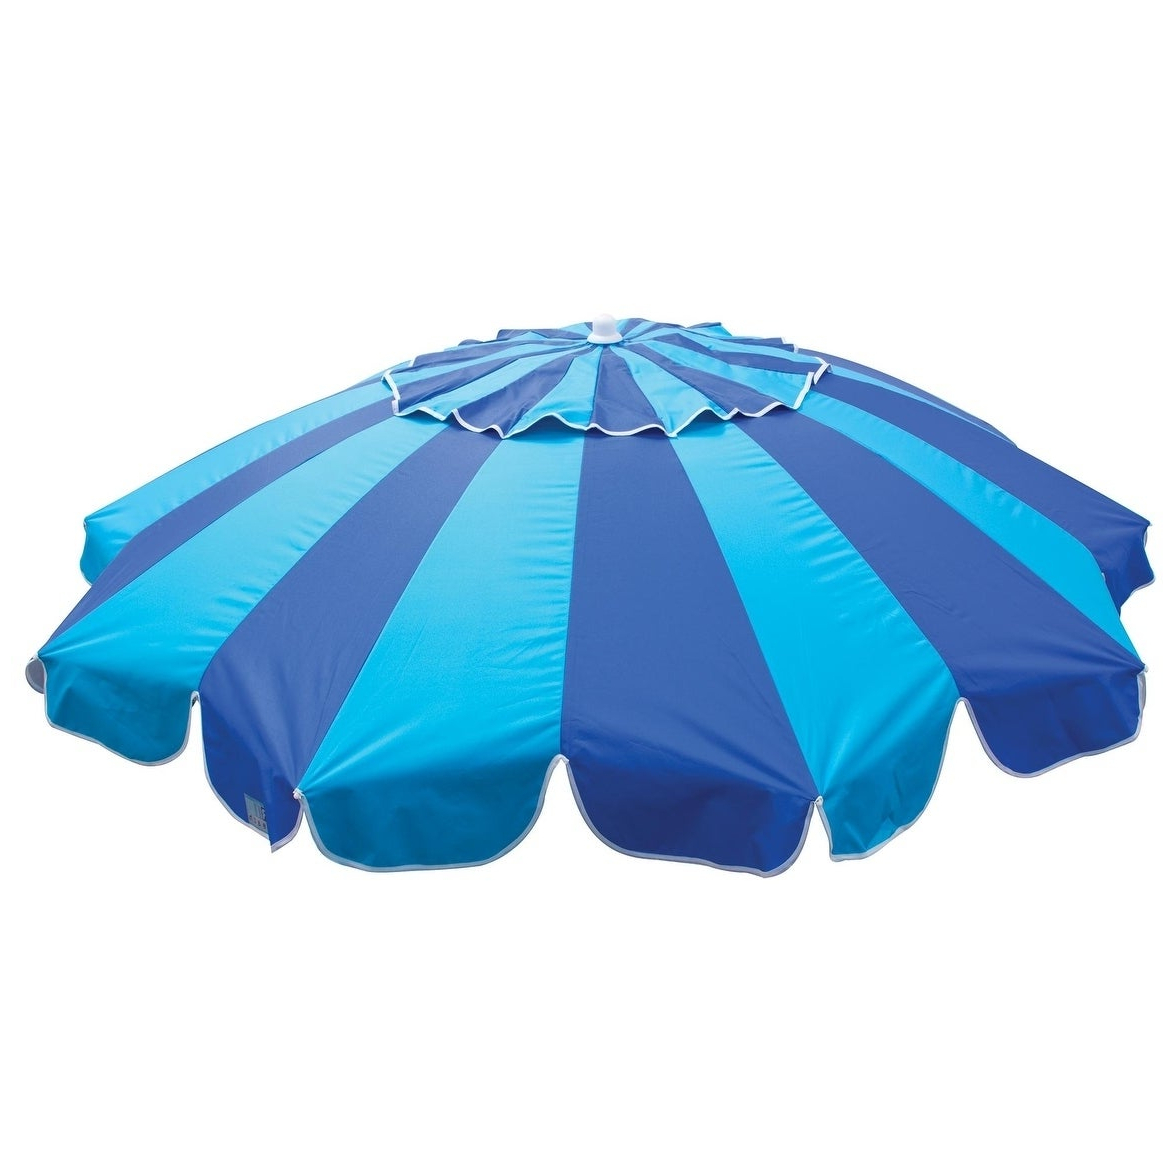 Margaritaville 7 Ft. Umbrella With Integrated Sand Anchor With Regard To Preferred Margaritaville Green And Blue Striped Beach With Built In Sand Anchor Umbrellas (Gallery 7 of 20)